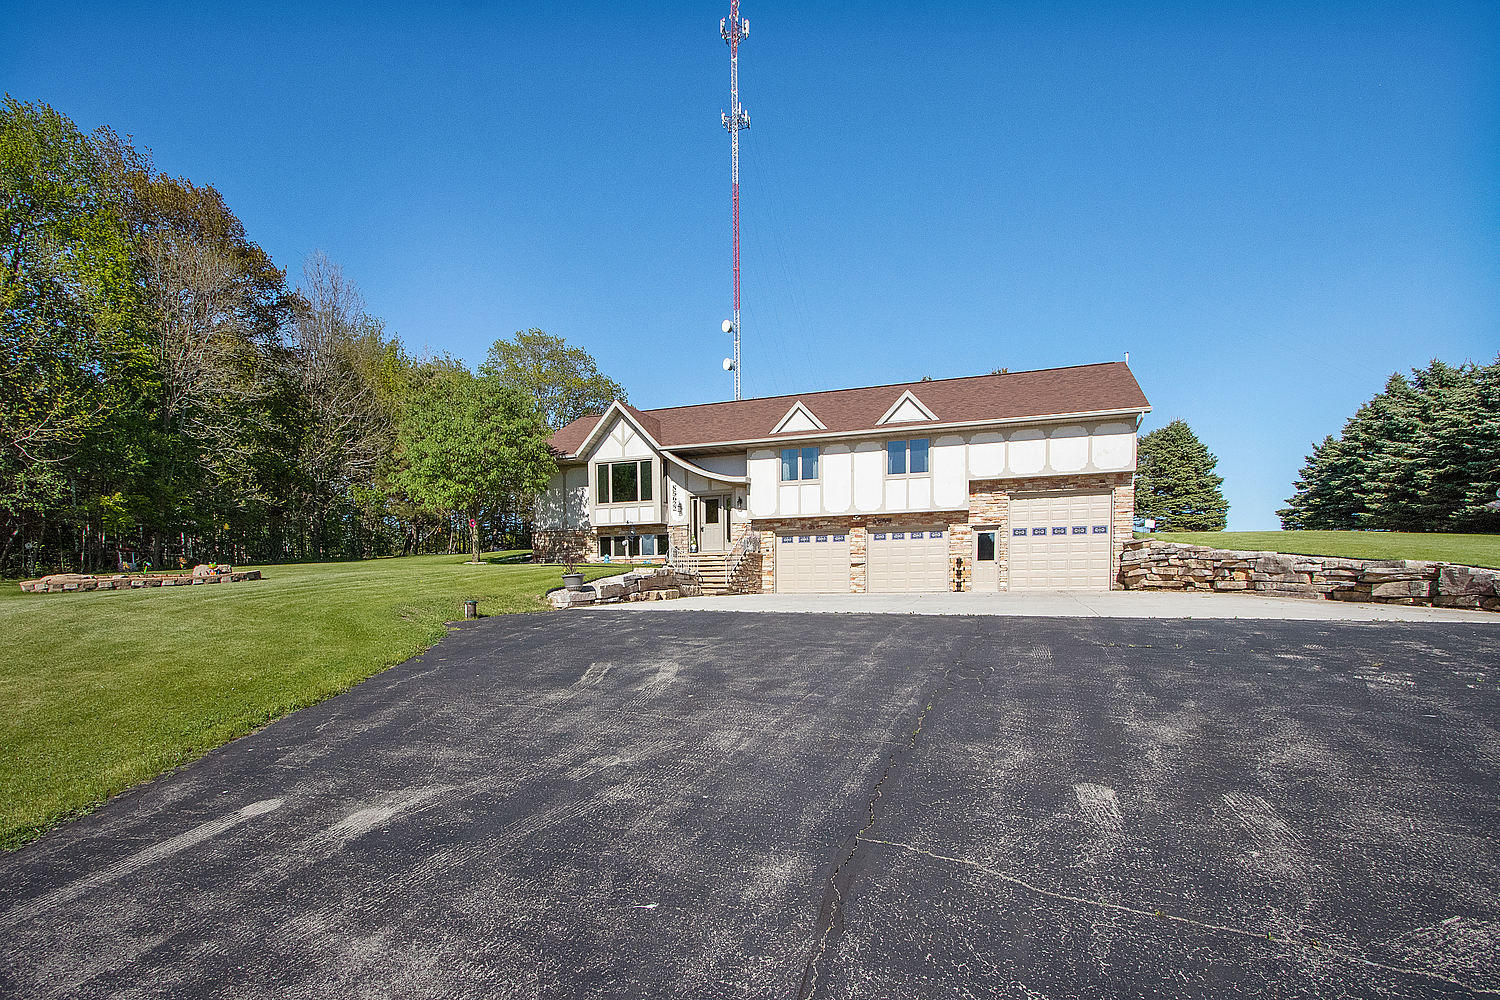 N5622 Maple View Lane, Stockbridge, Wisconsin 54129, 3 Bedrooms Bedrooms, 9 Rooms Rooms,2 BathroomsBathrooms,Single-Family,For Sale,Maple View Lane,1690347